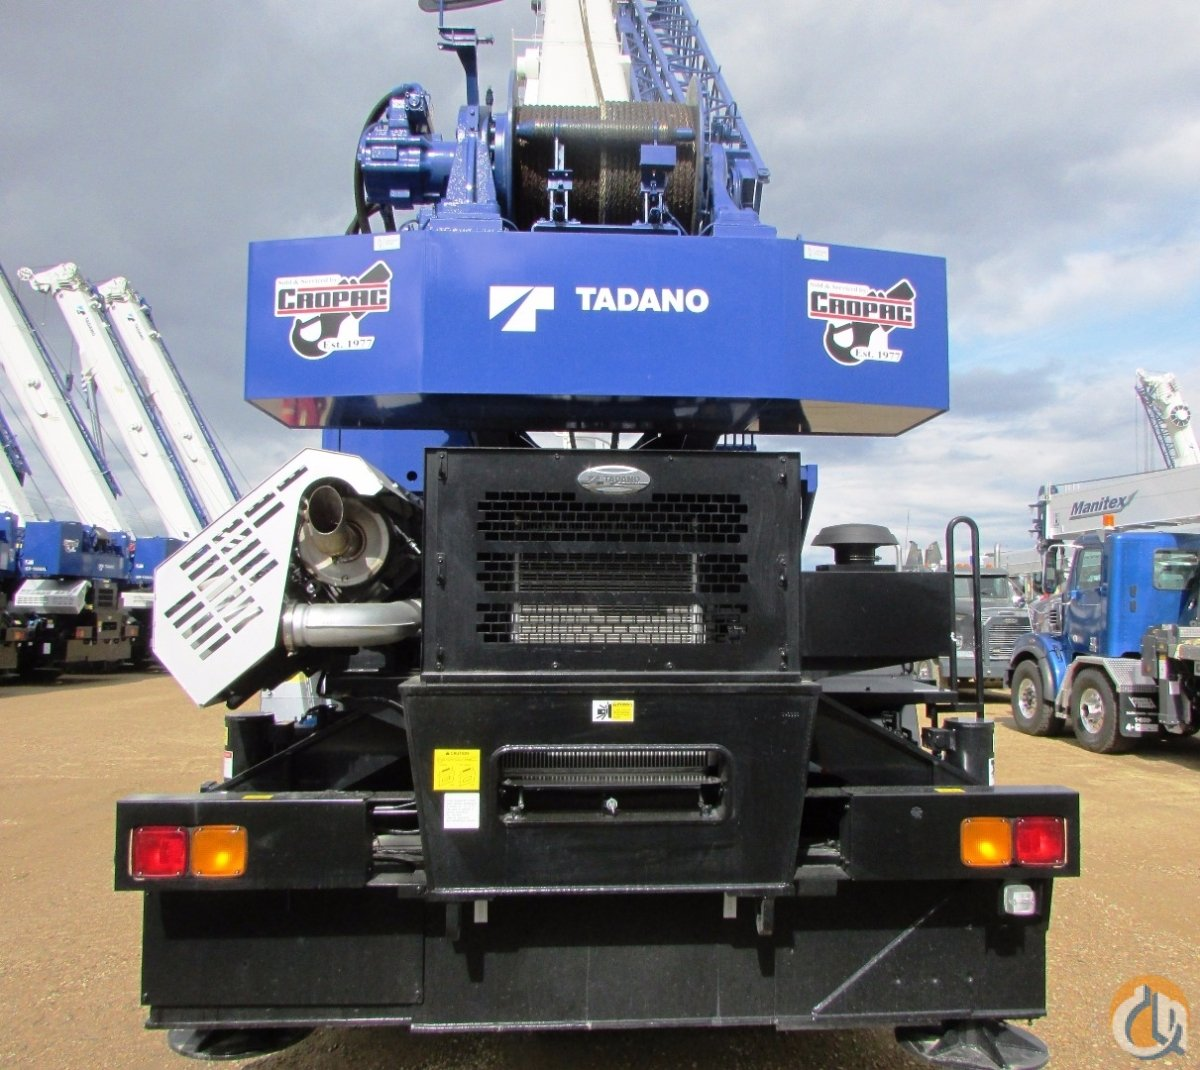 2015 TADANO GR550XL Crane for Sale in Nisku Alberta on CraneNetworkcom